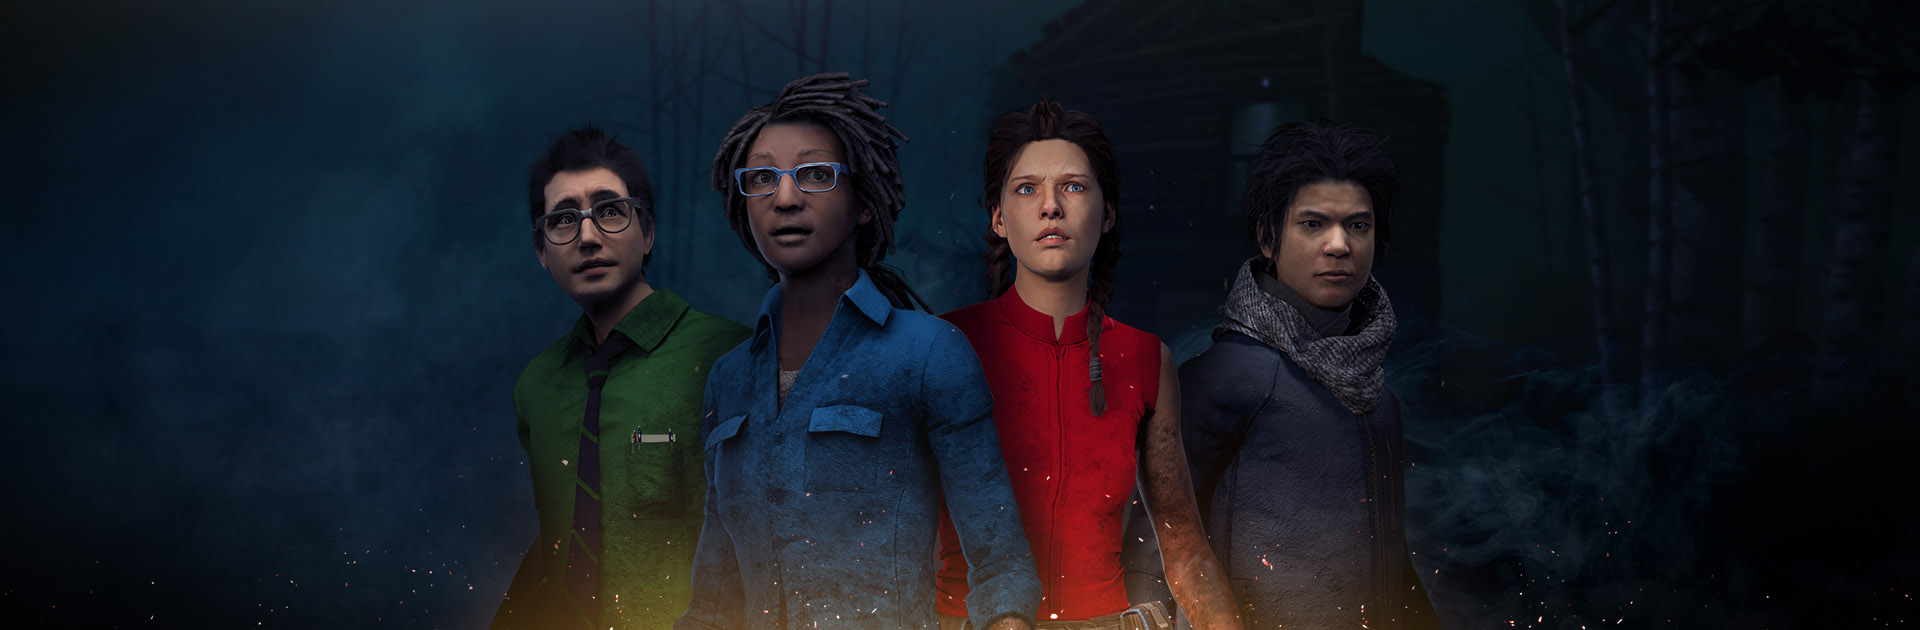 Dead by Daylight™'s Head Start on What's Next: Team Introduces Cross-Play and Cross-Friends Features